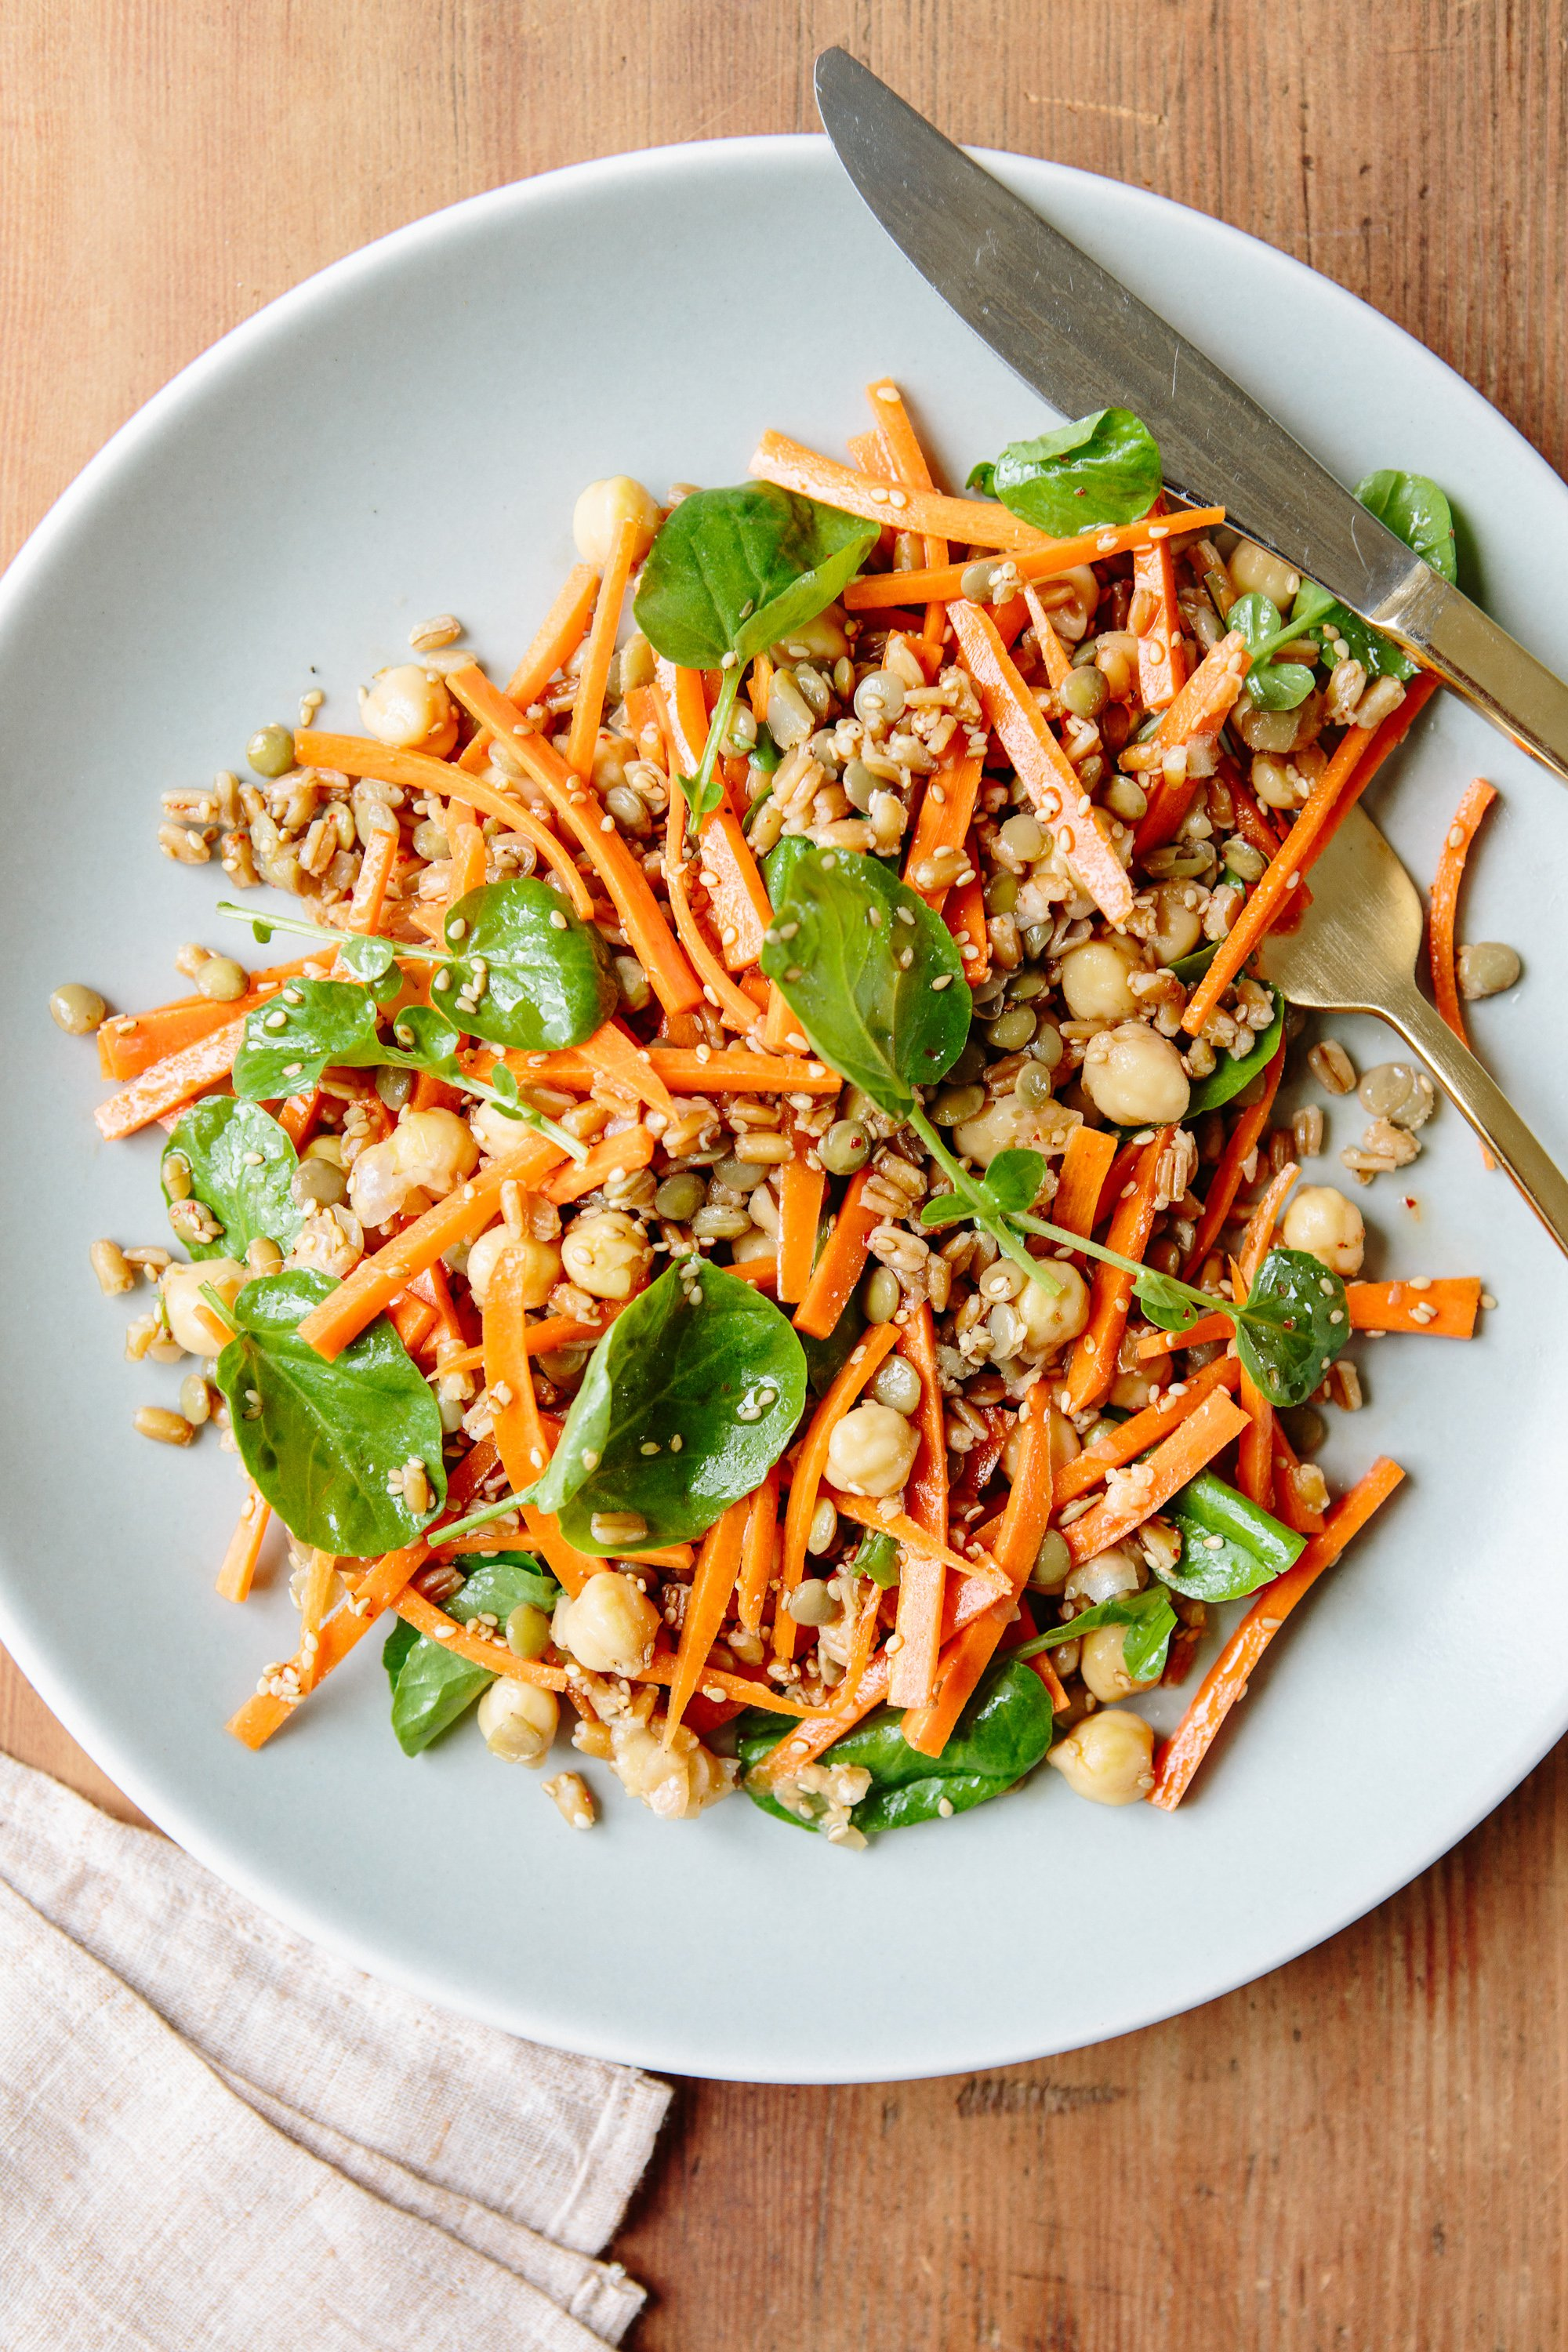 23 Satisfying, Wholesome Lunches You Can Make the Night Before | Kitchn